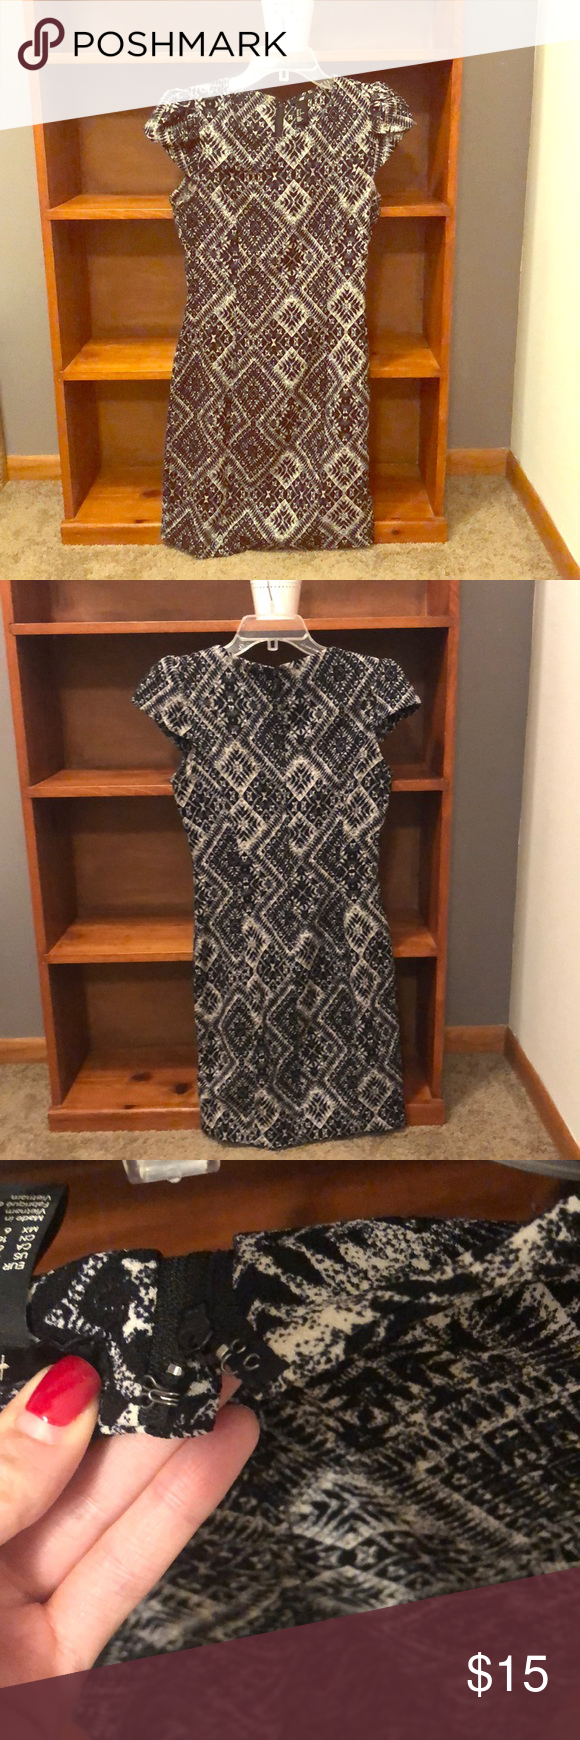 H&M Patterned Dress Just above the knee, patterned dress, very dark blue and cream pattern, slight patted sleeve, full zipper in the back, and very lightly worn. Perfect for a young professional or just someone looking to mix up their work wardrobe. Could also be good for homecomings, weddings and other business casual events. H&M Dresses Mini #businesscasualoutfitsyoungprofessional